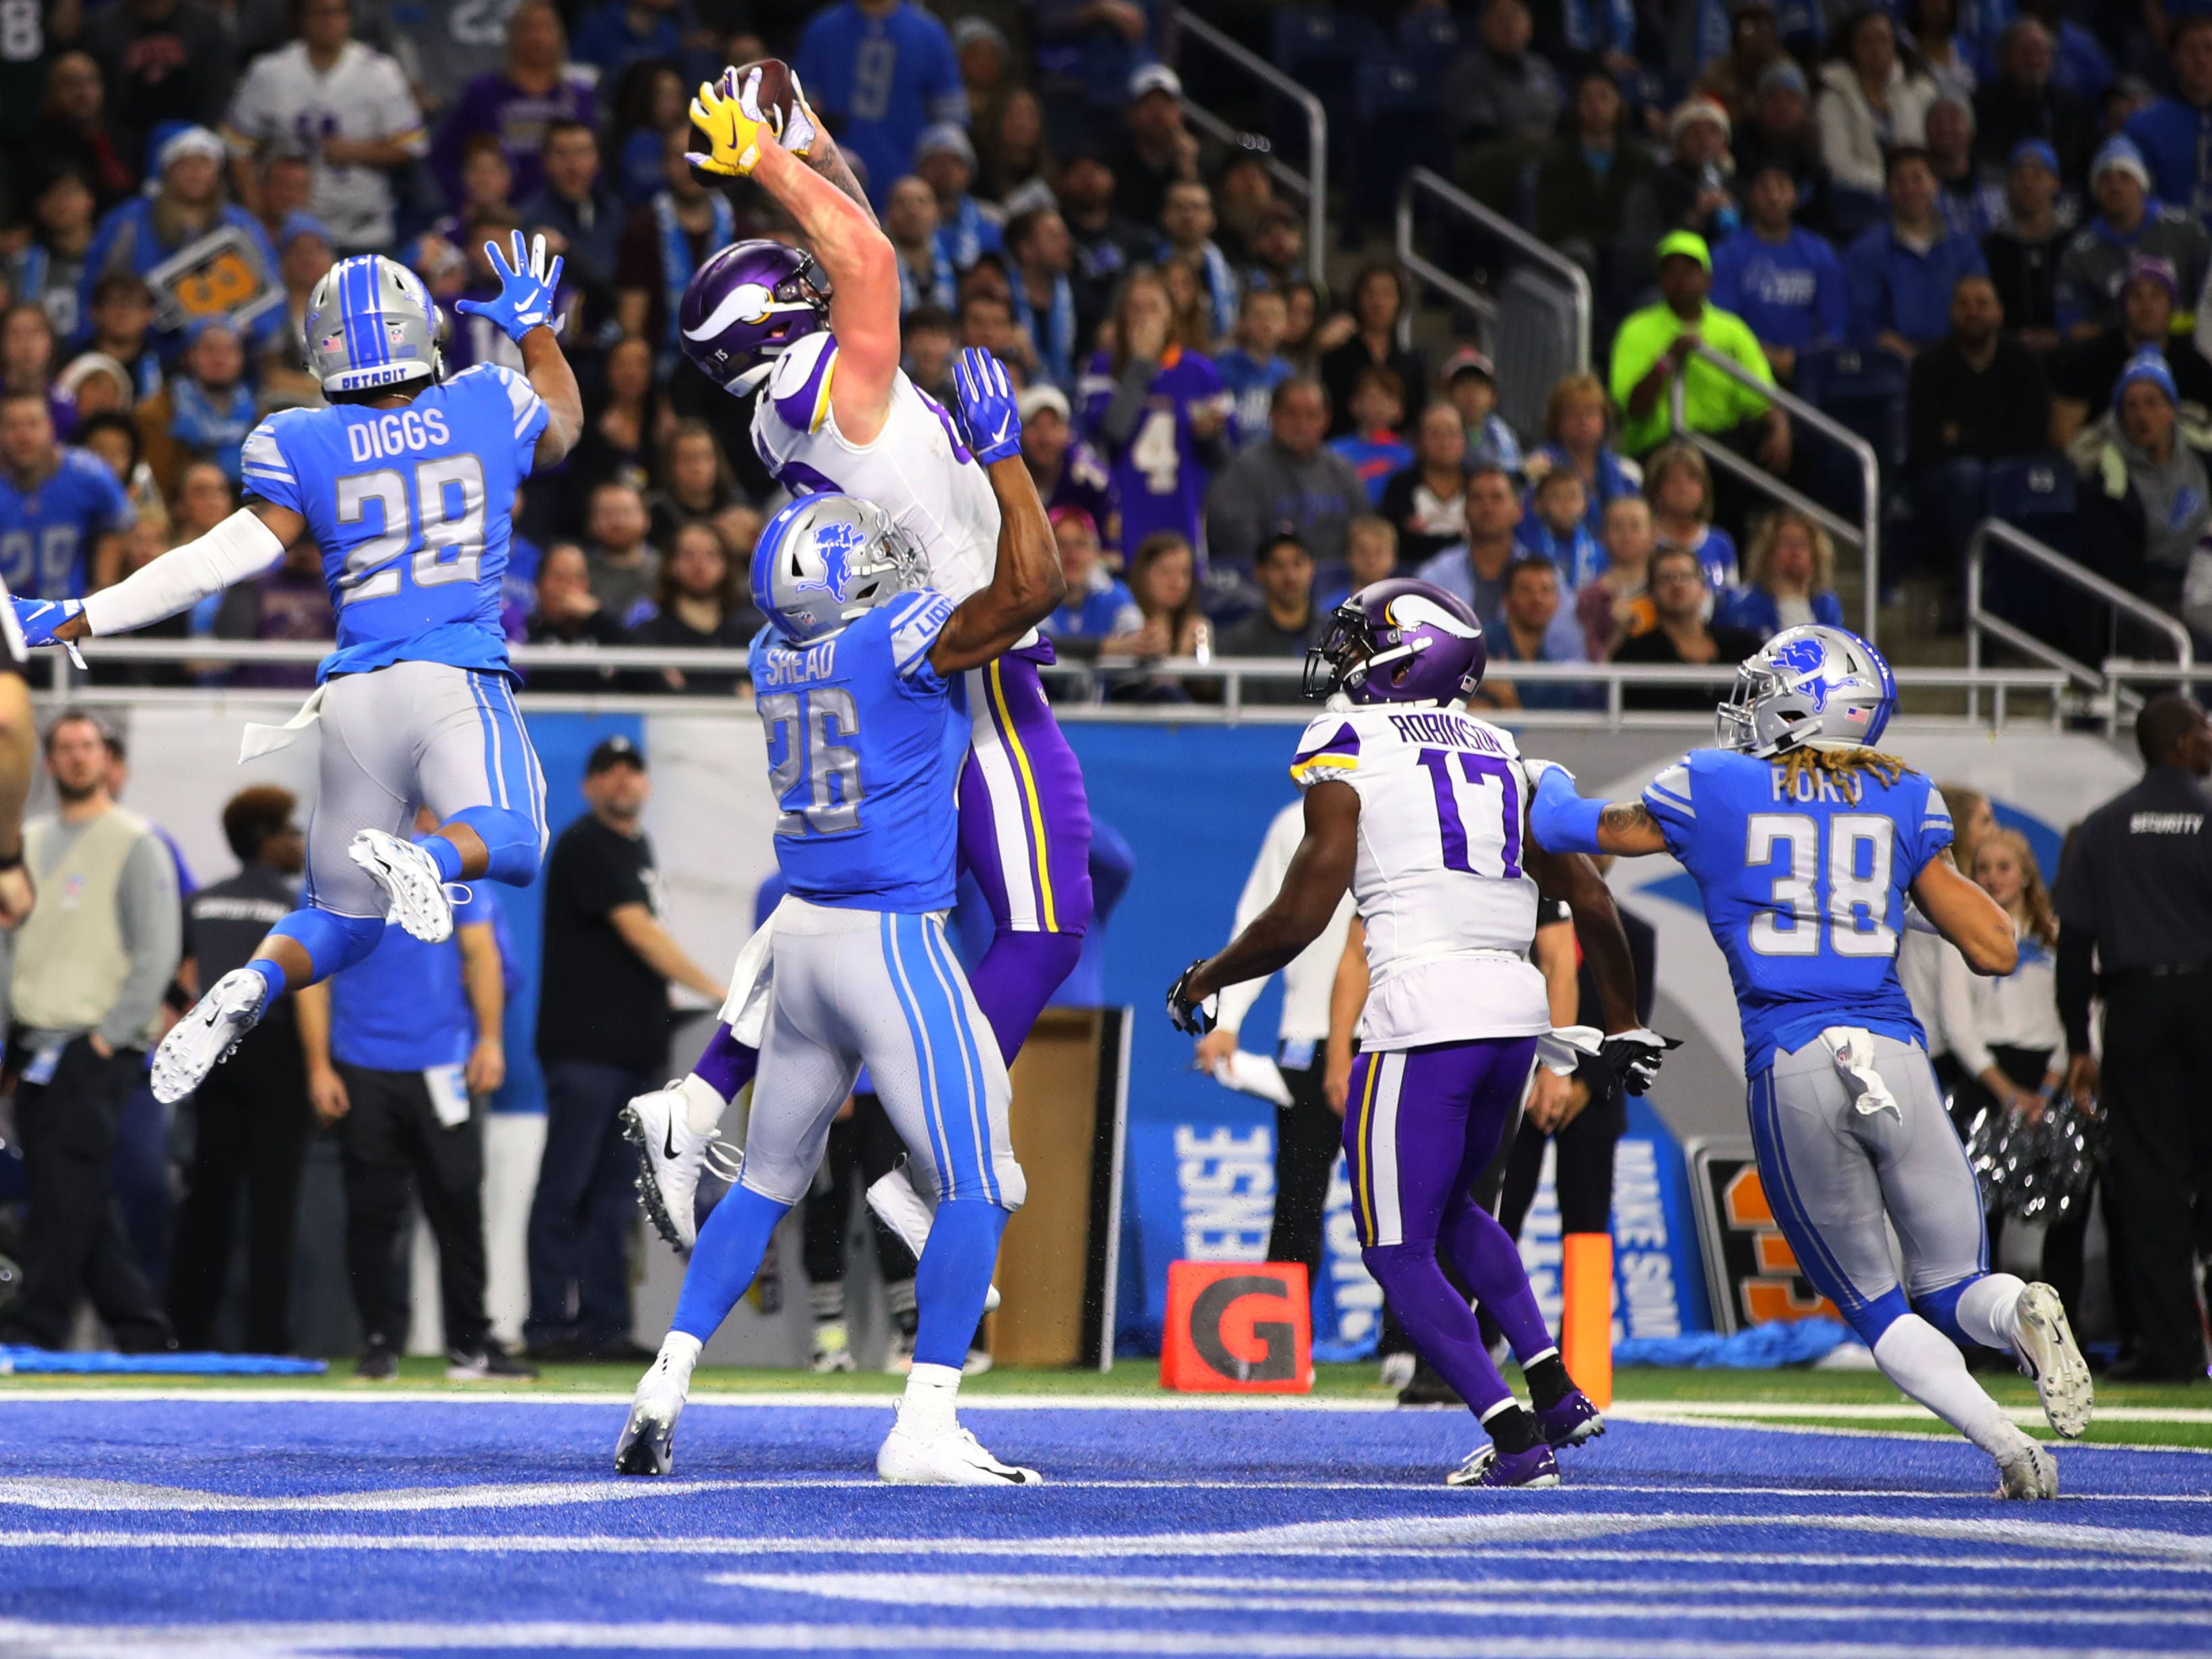 28. Lions (29): If half is almost over ... and Hail Mary is in order ... and there's massive NFC North tight end on field wearing No. 82 ... cover him with 11 defenders.